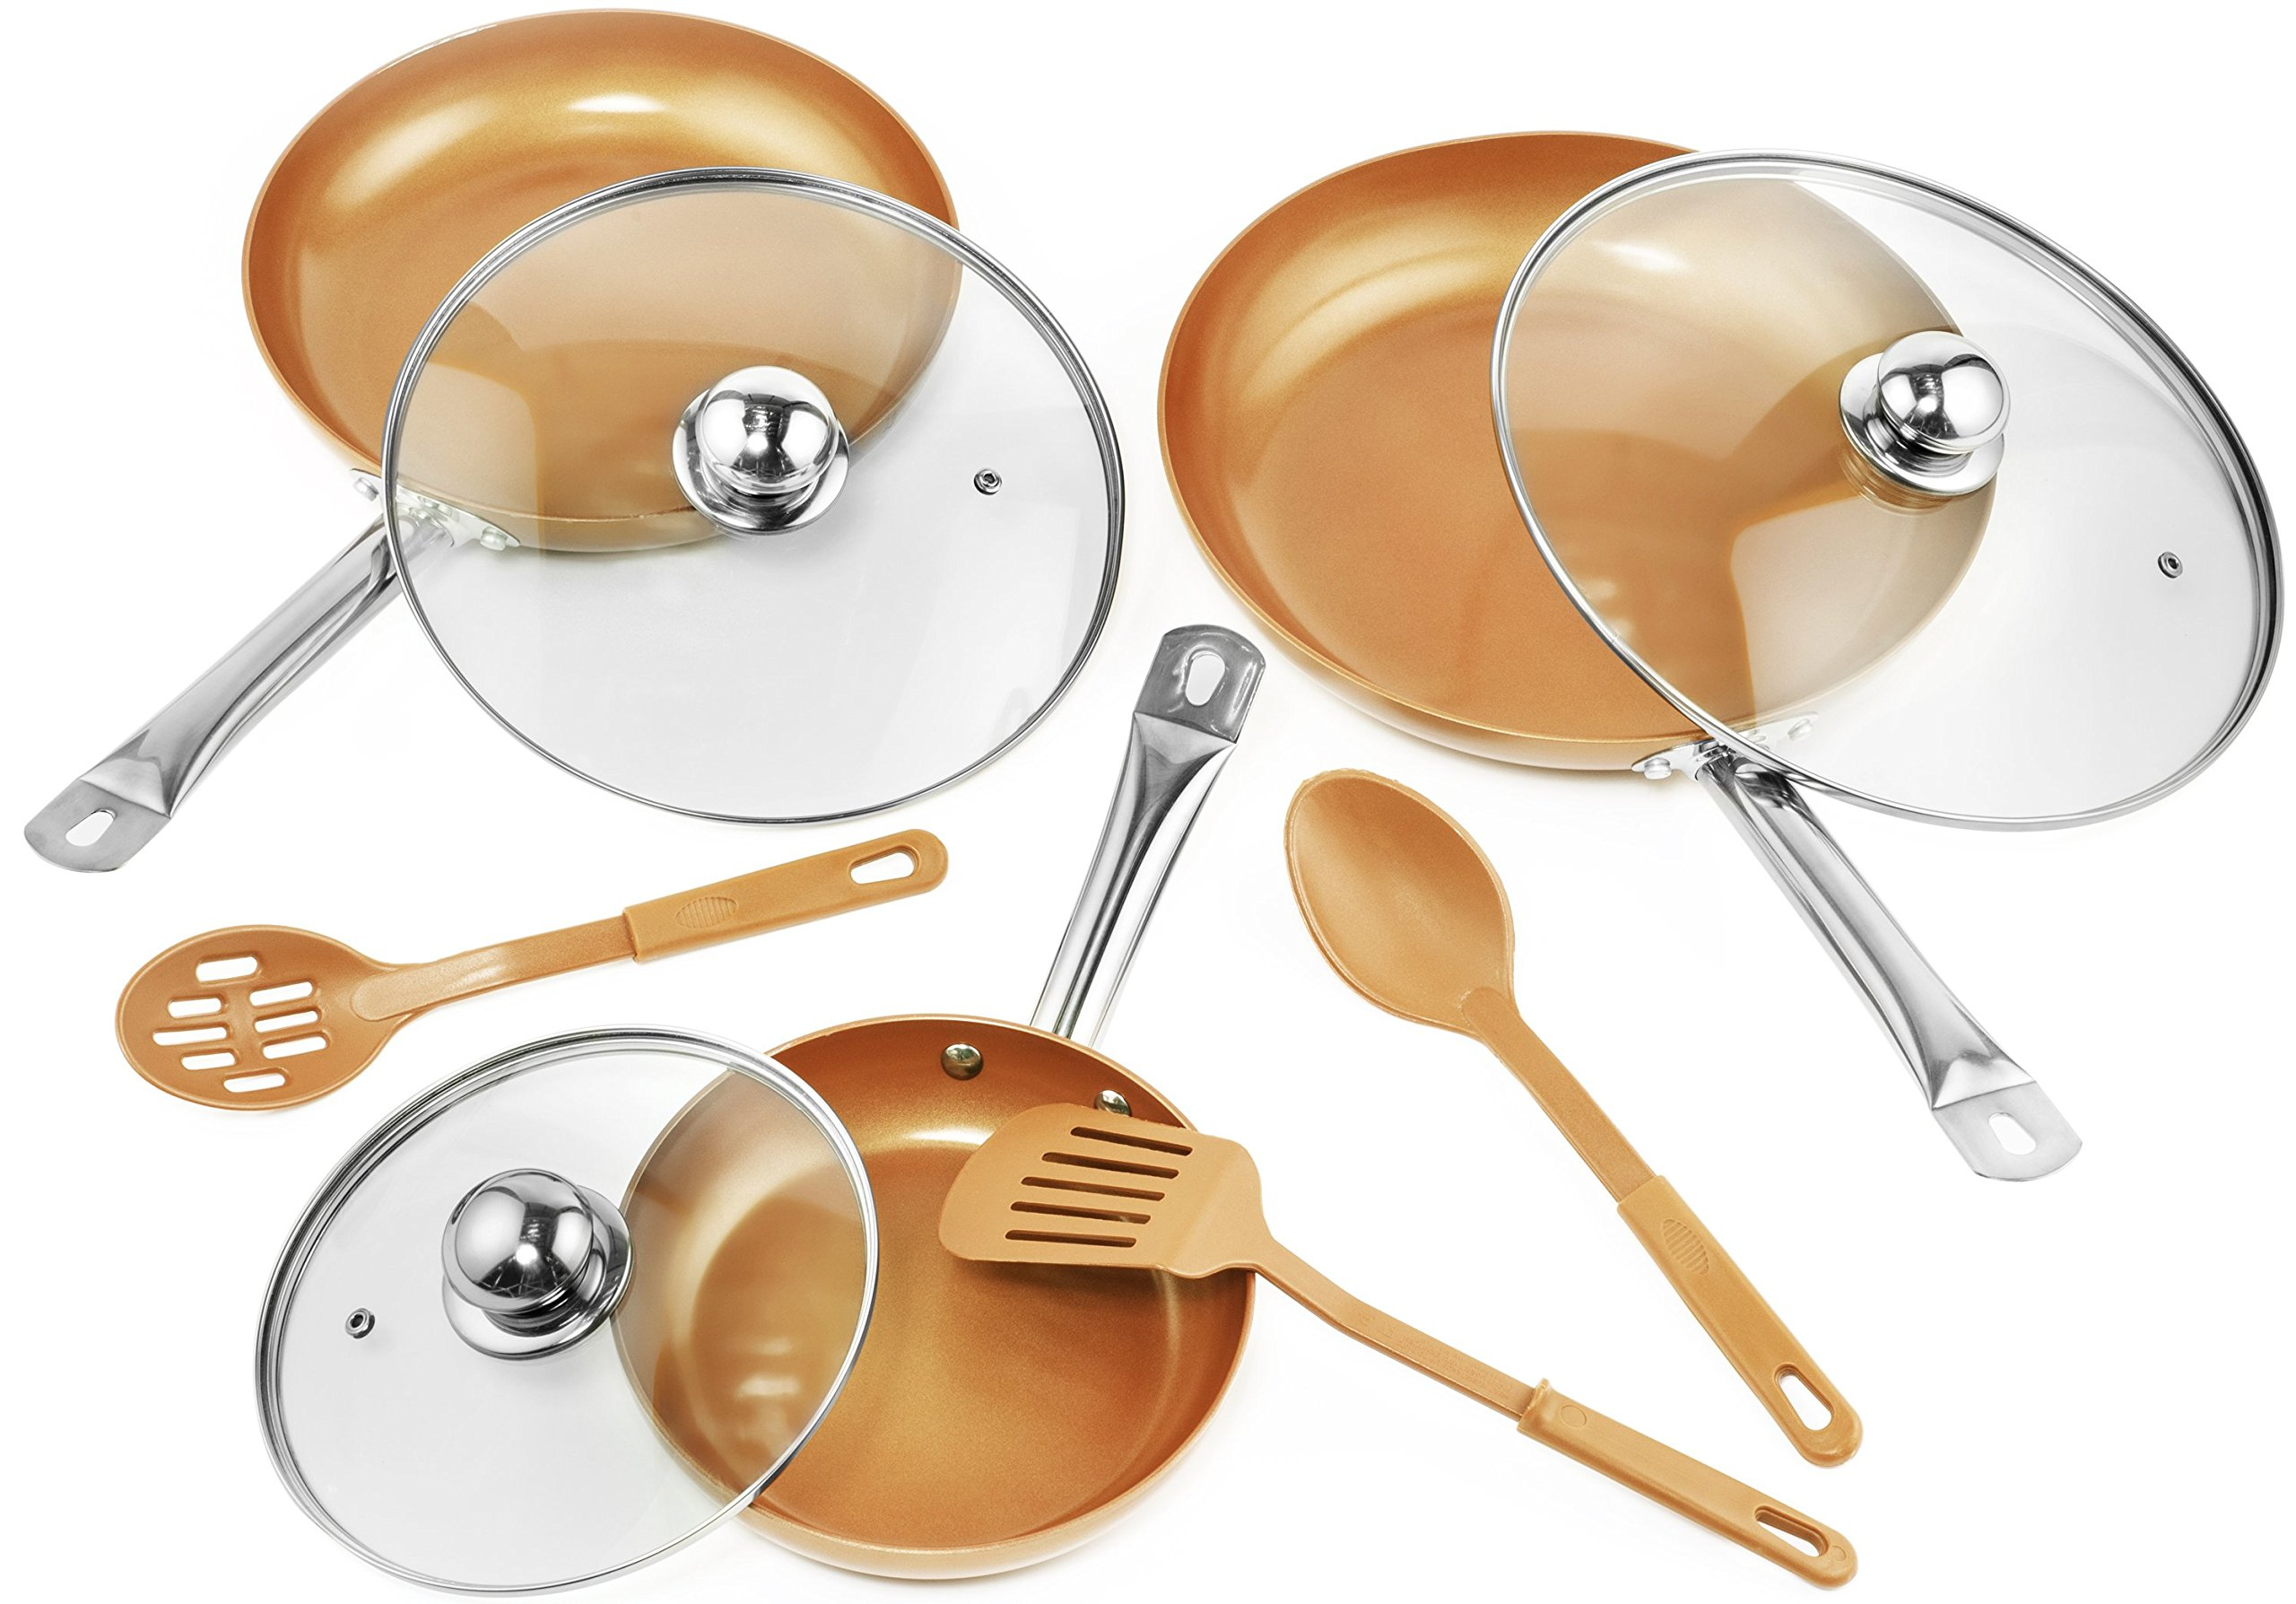 9 Pc Set Copper Frying Pan with Lids and Spoons -Non Stick Chef Pan 8,10 & 12'' - Heavy Duty Tempered Glass Lids, PFOA Free Skillet, Oven & Dishwasher Safe 3 Pans 3 Lids 3 Professional Spatula & Spoon by caseguru